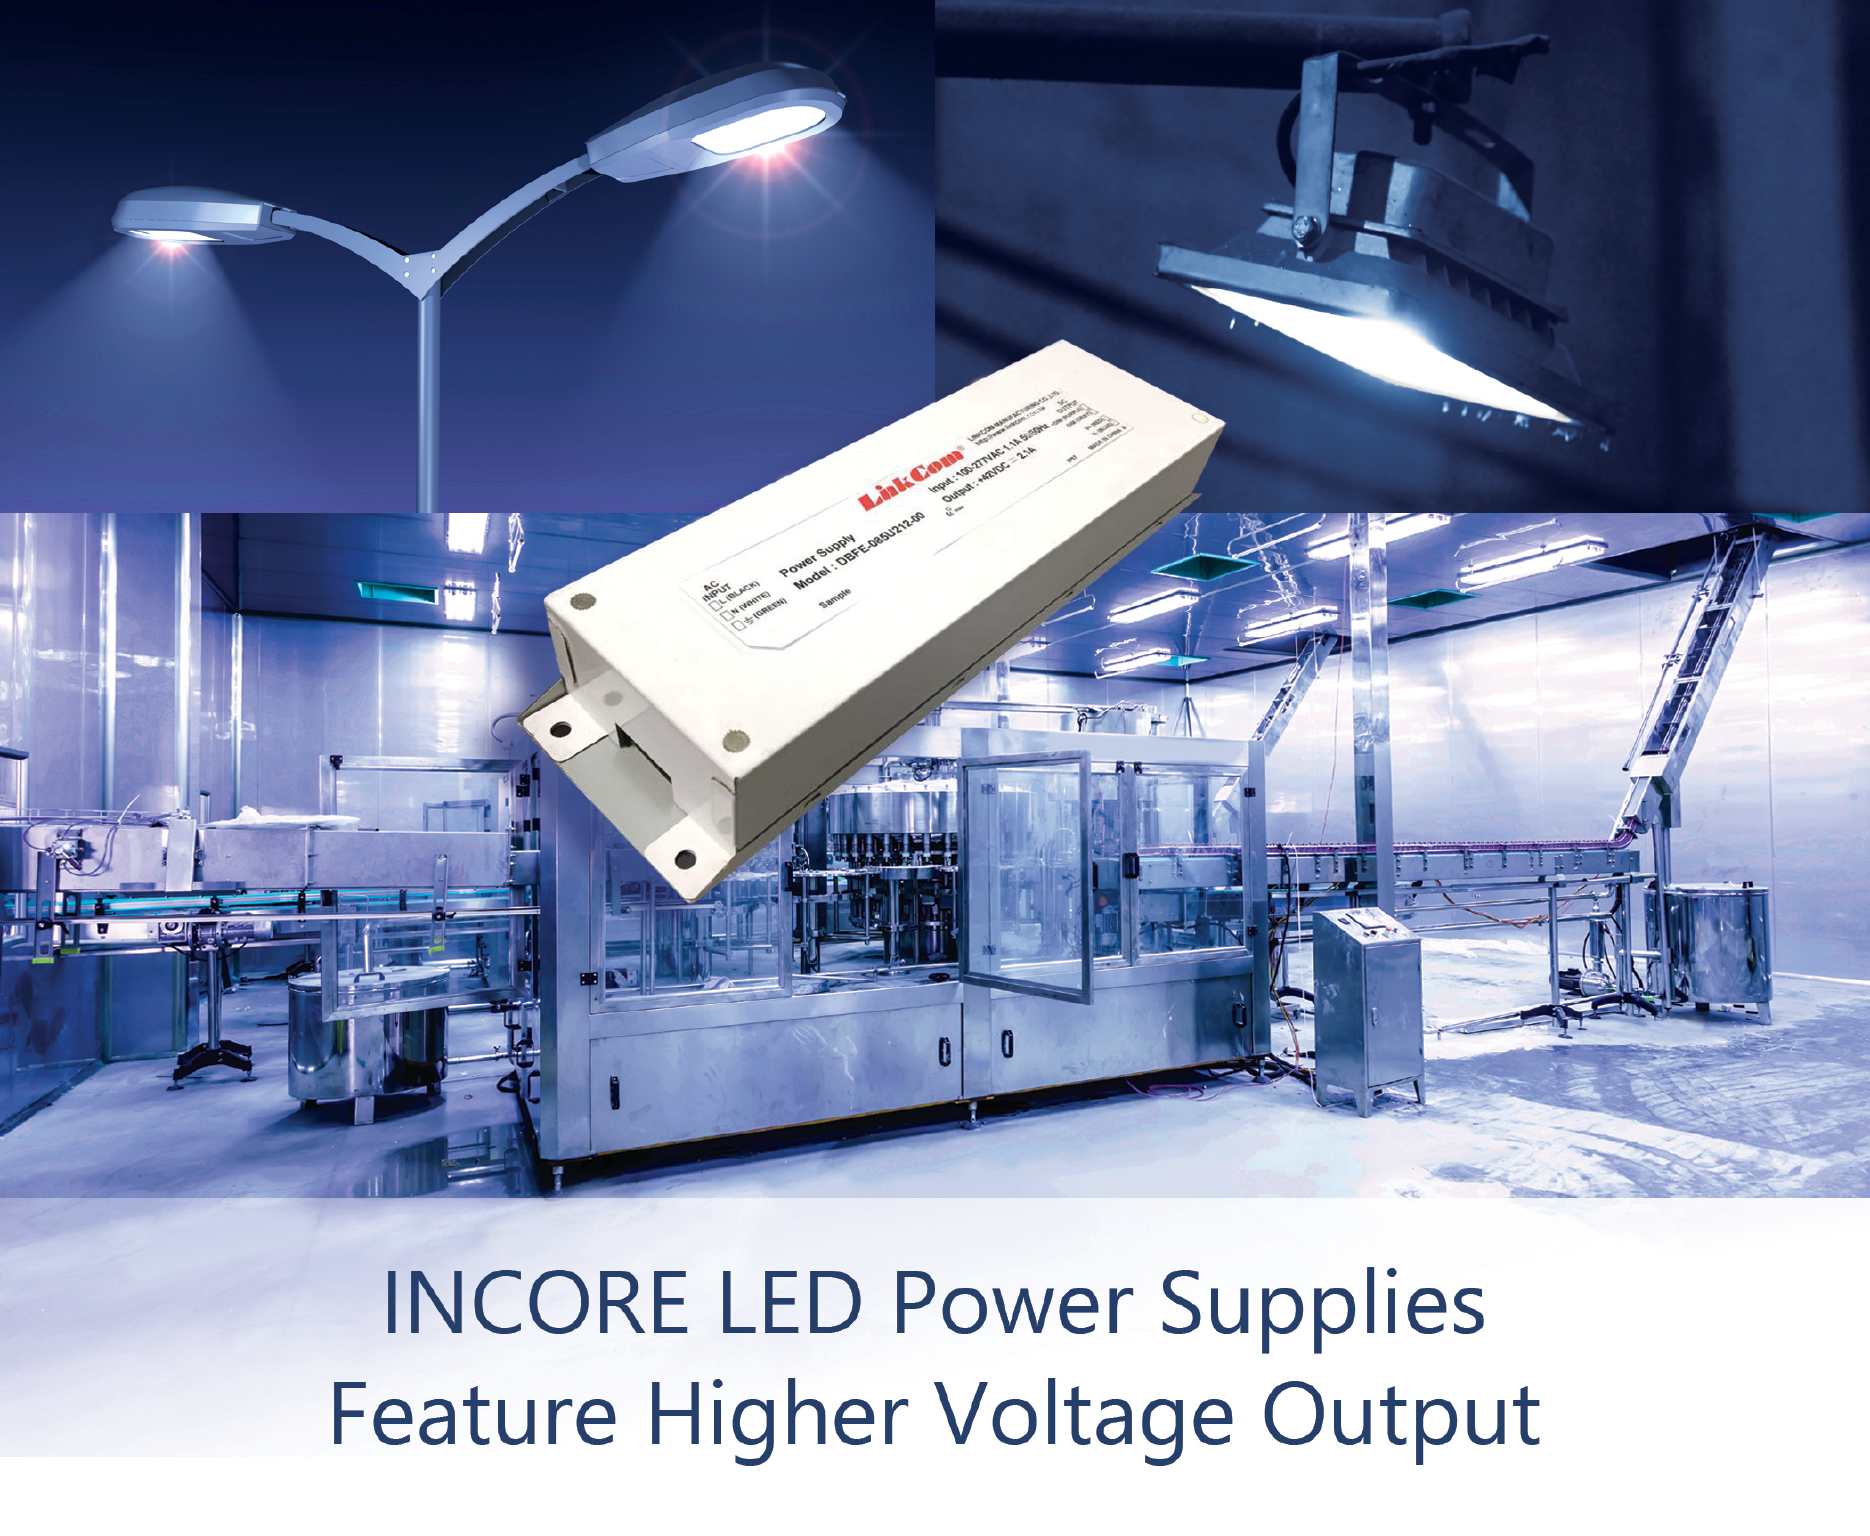 LED Power Supplies Deliver Constant Current at Output Voltage Levels Required for High-Lumen-Output Applications